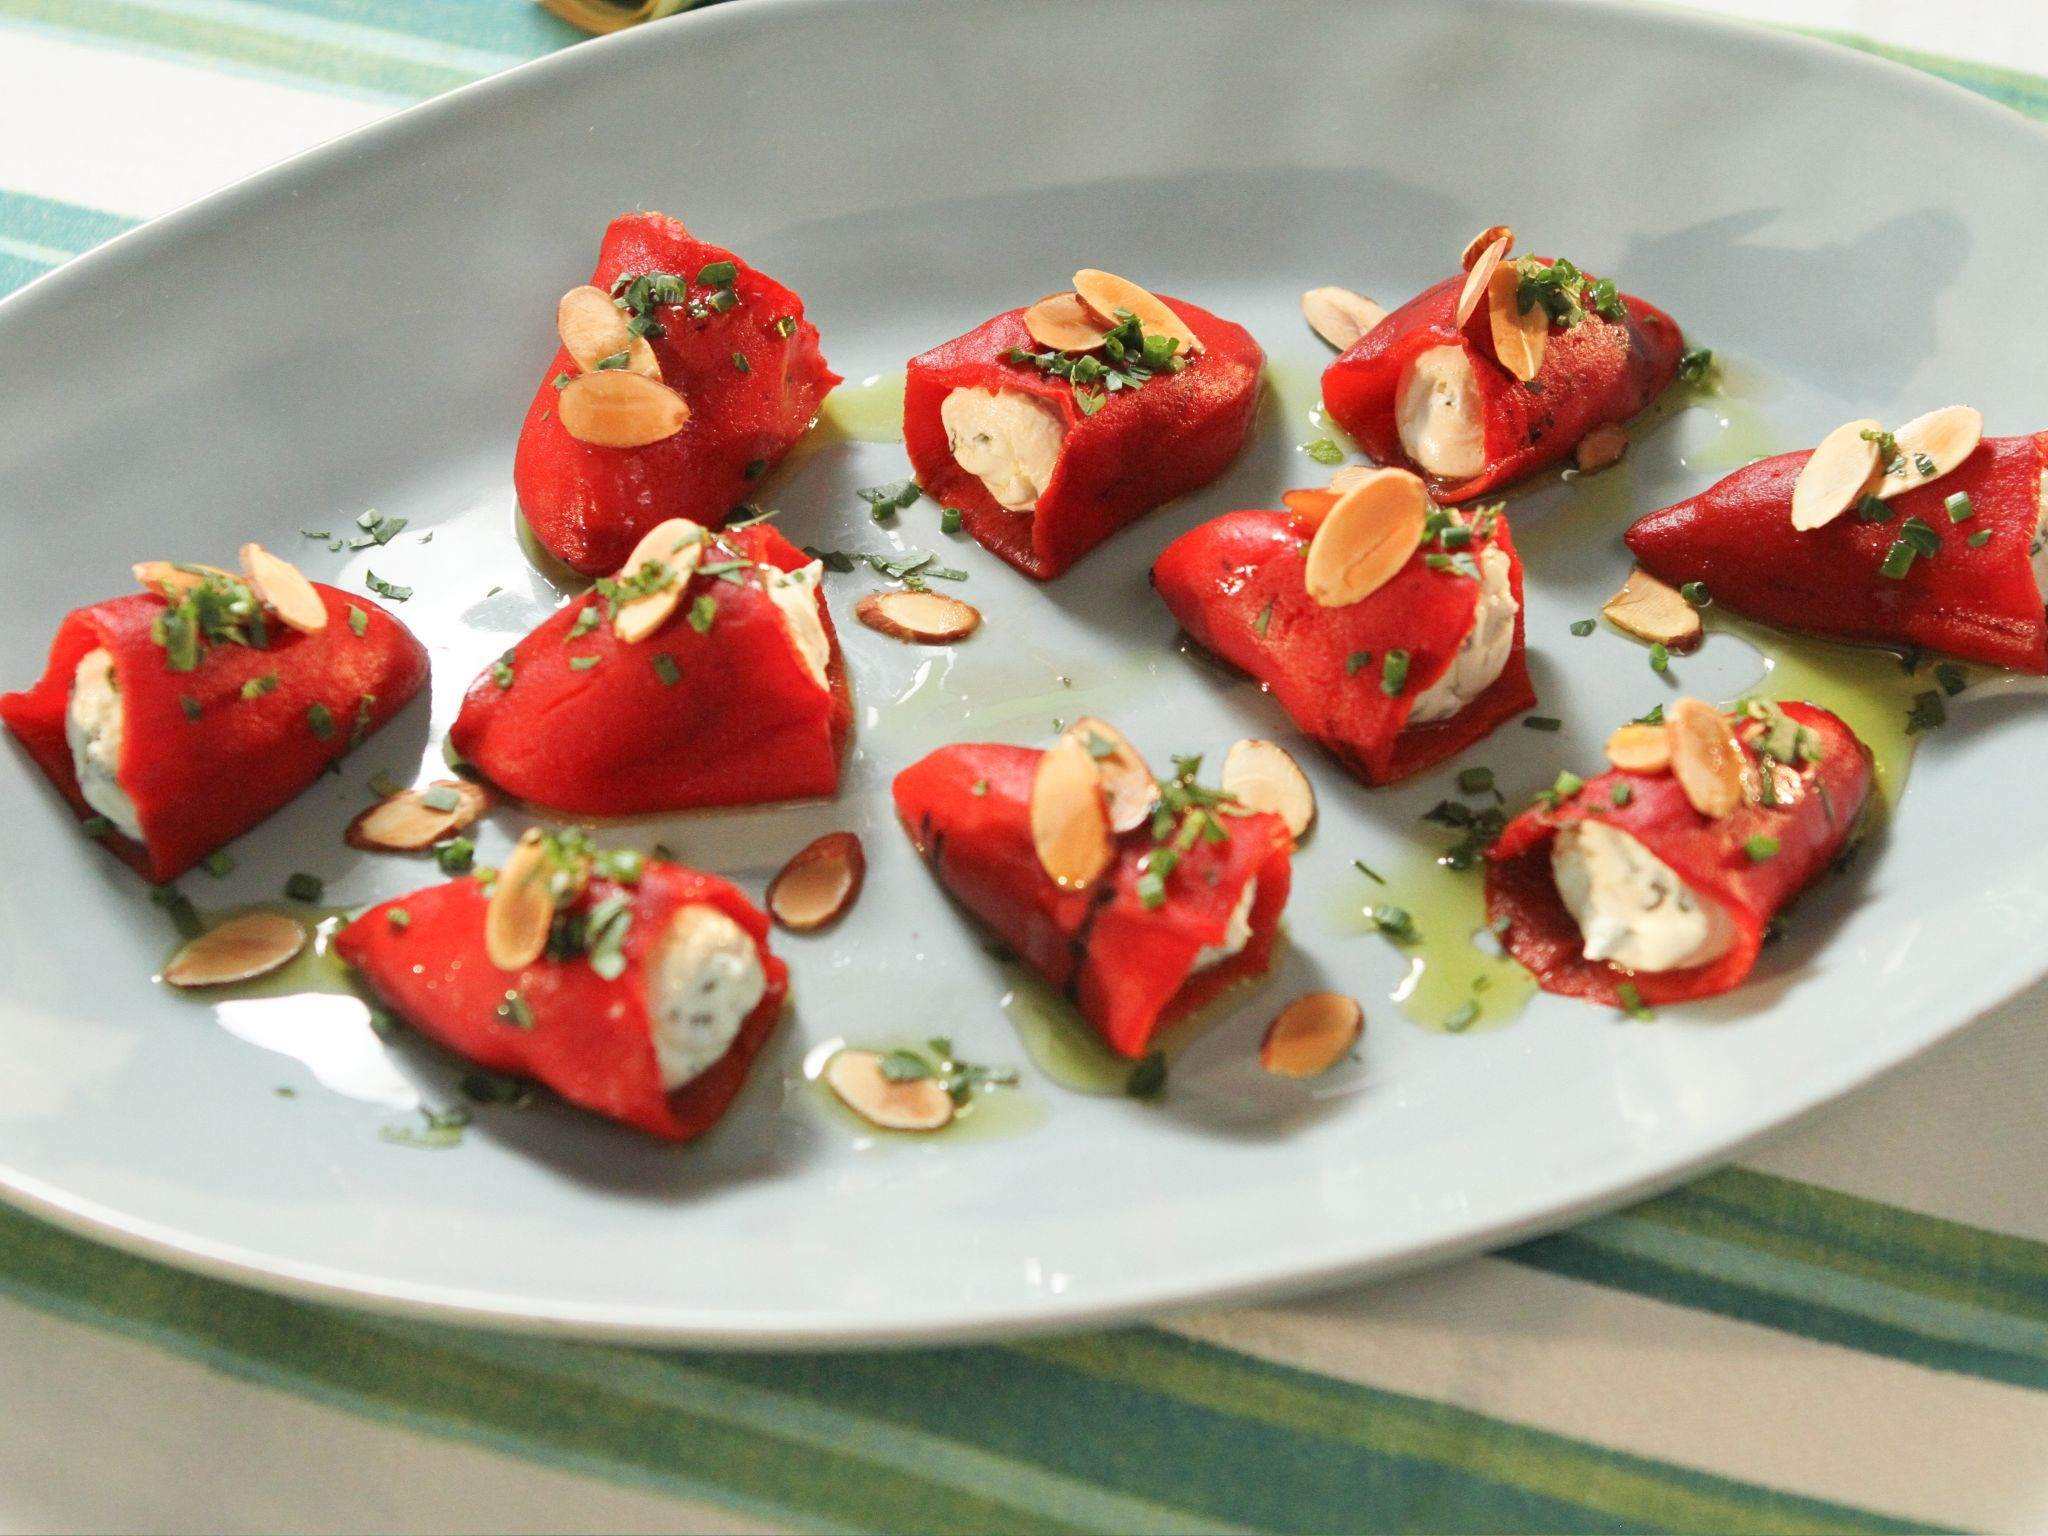 Goat cheese stuffed piquillo peppers recipe patricia heaton goat cheese stuffed piquillo peppers recipe patricia heaton goat cheese and goats forumfinder Choice Image